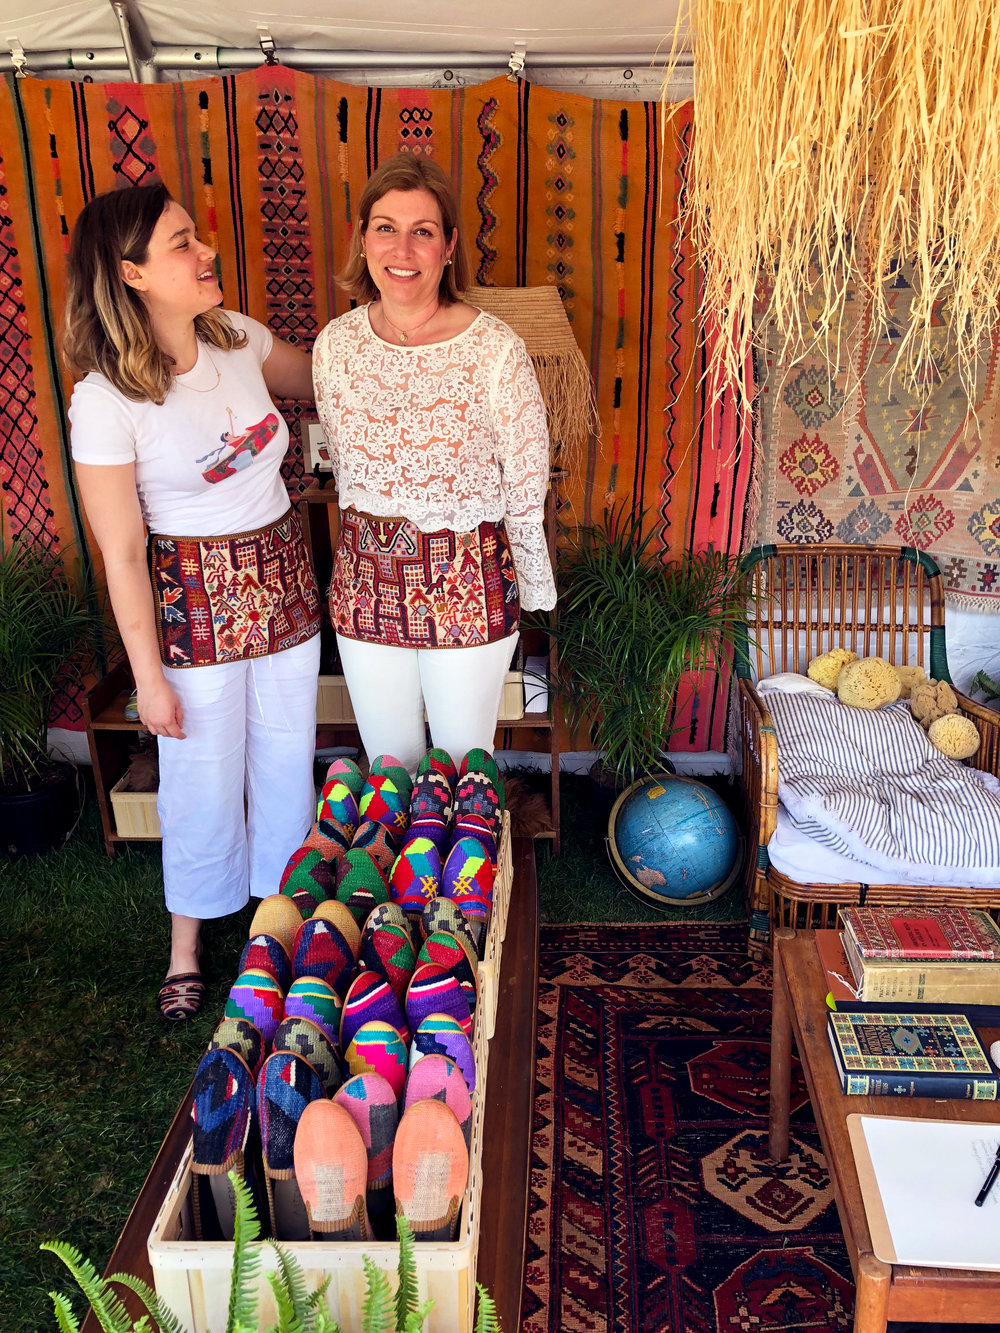 Lena and Mary wearing Kilim Shoes and Kilim Aprons.